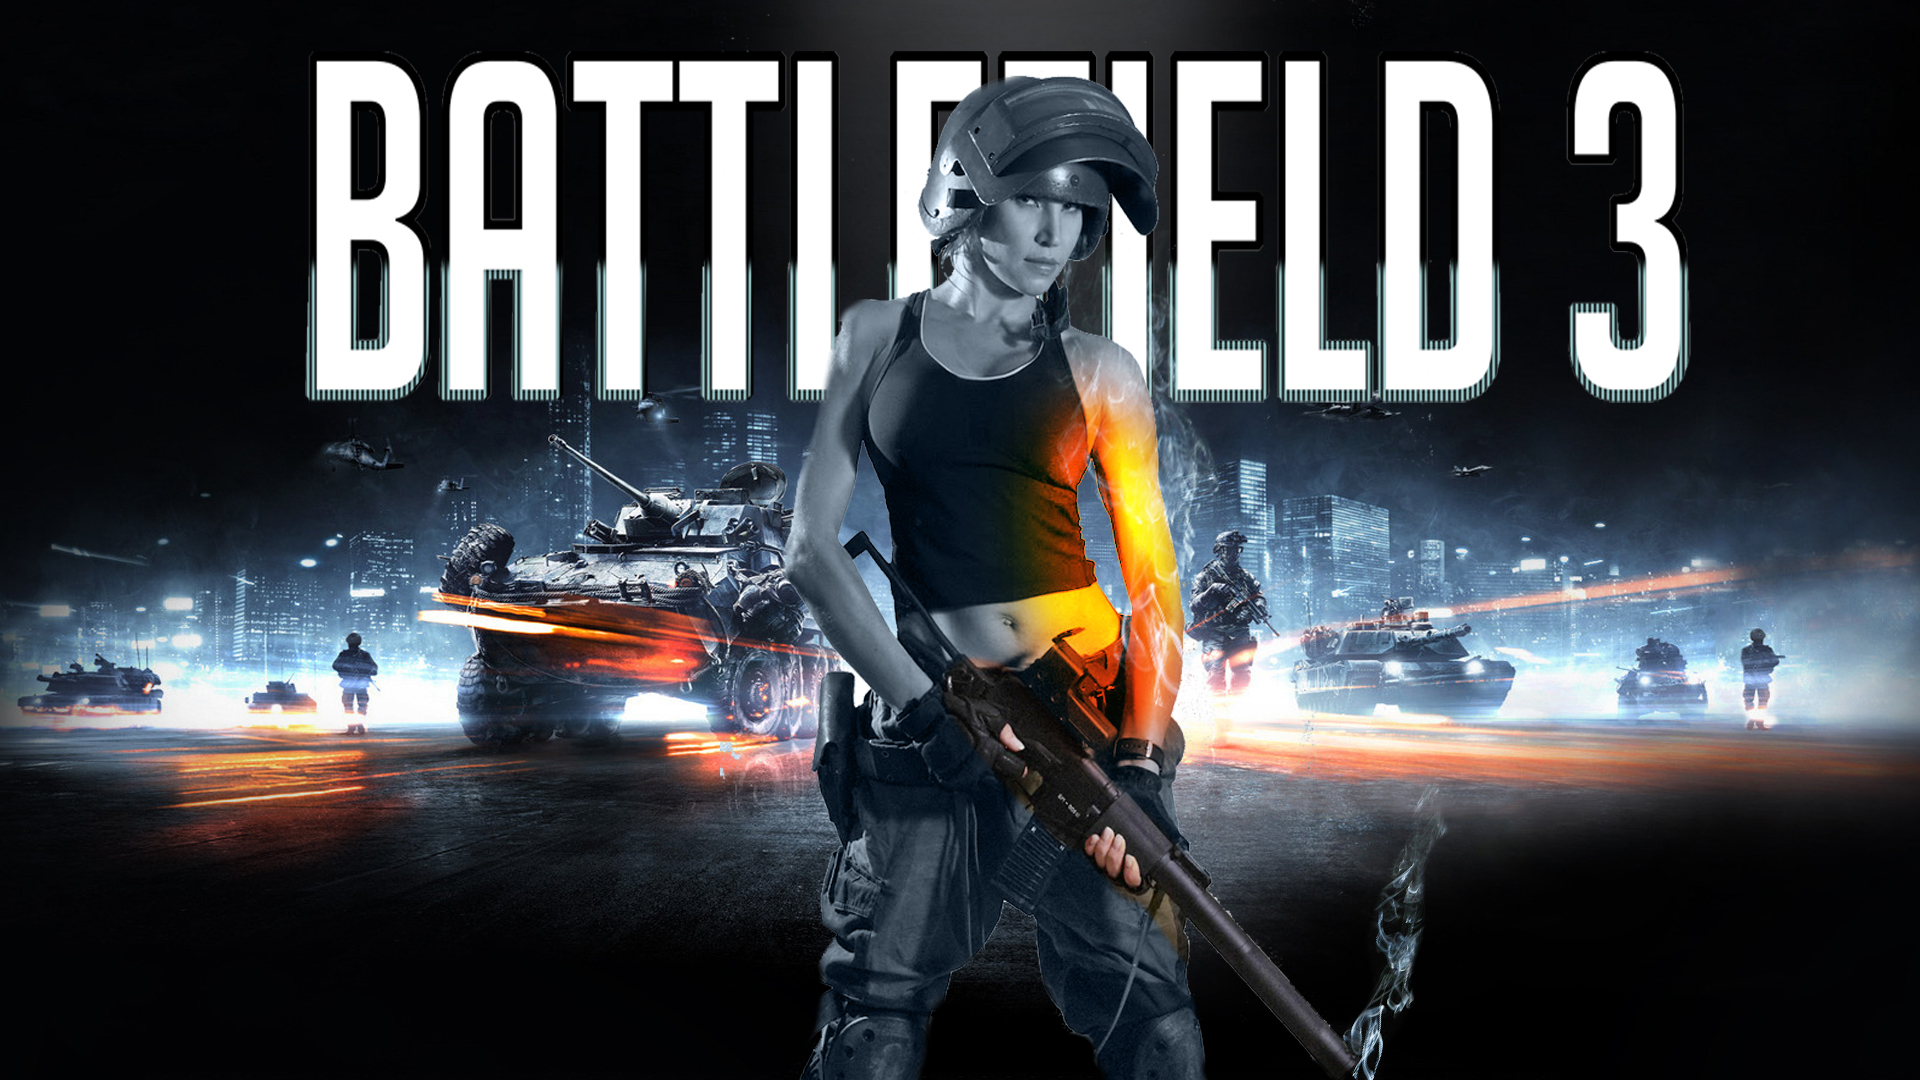 Battlefield 3 clipart svg royalty free Battlefield 4 girl clipart - ClipartFox svg royalty free